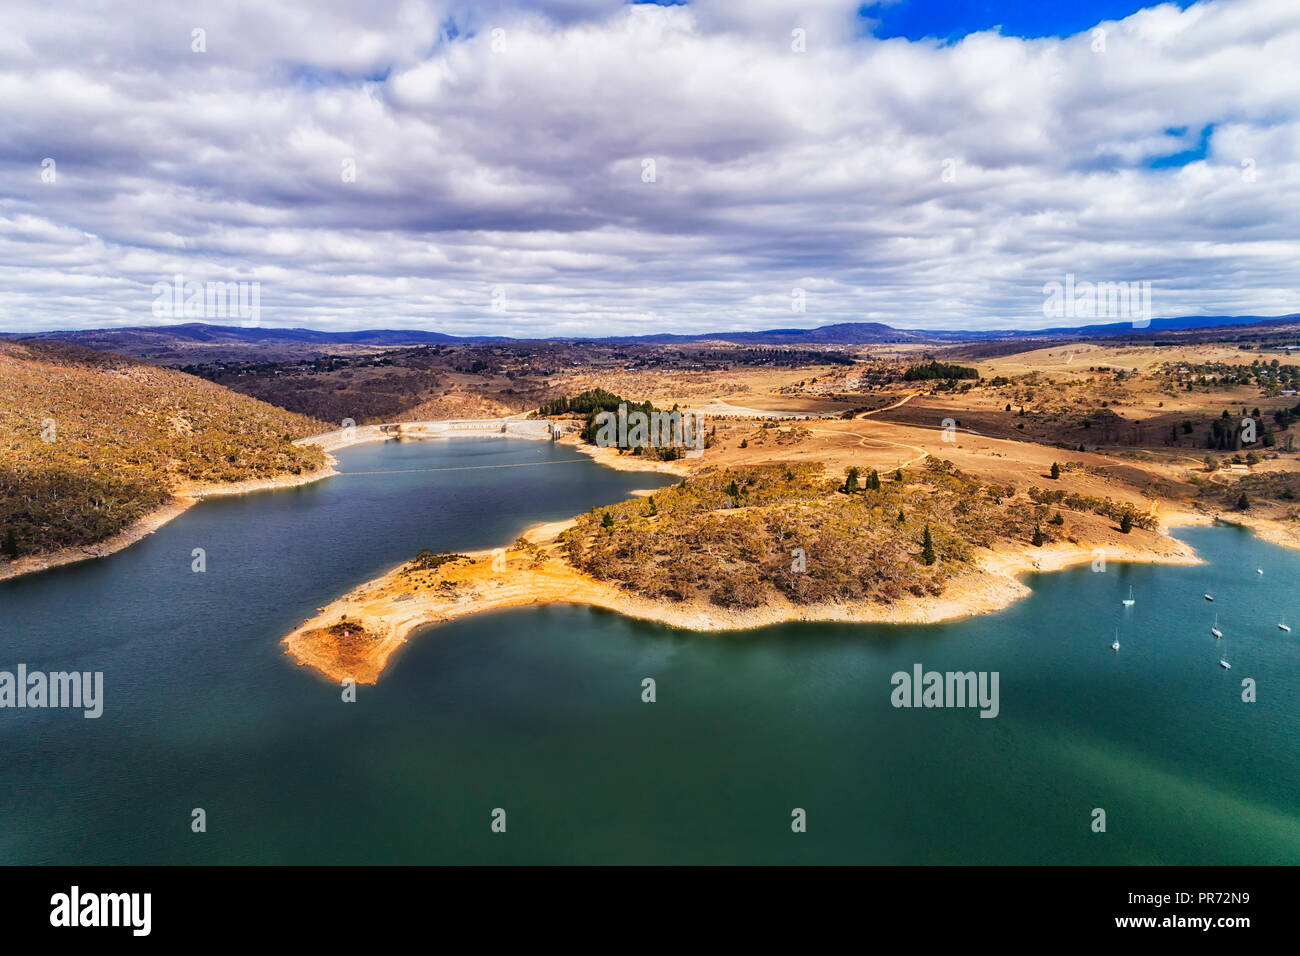 Curved waterfront of Jindabyne lake on Snowy river around dam which forms the lake in Jindabyne town of Snowy mountains in Australia. - Stock Image